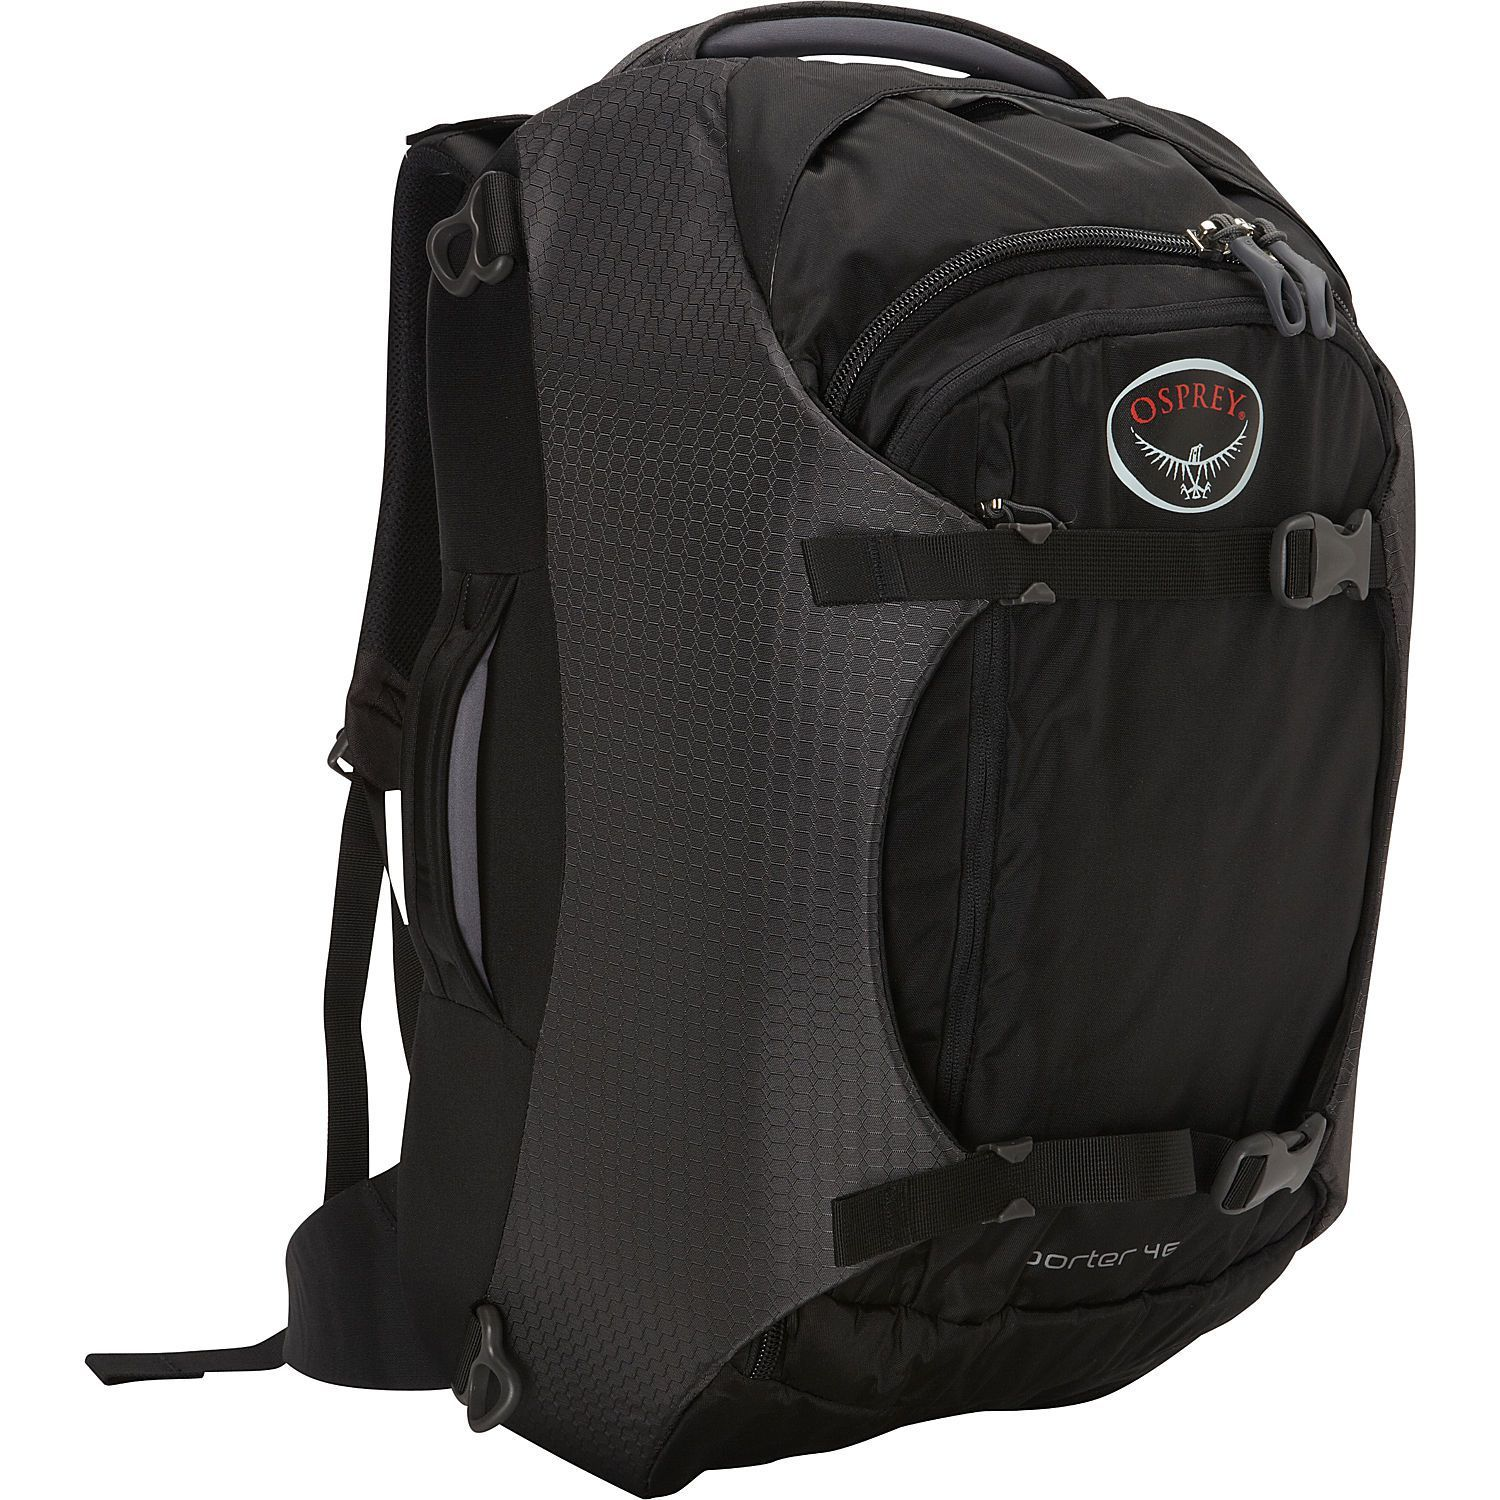 3518e57d68 Osprey Porter 46. BUY THE OVER THE SHOULDER STRAP! Osprey Porter 46